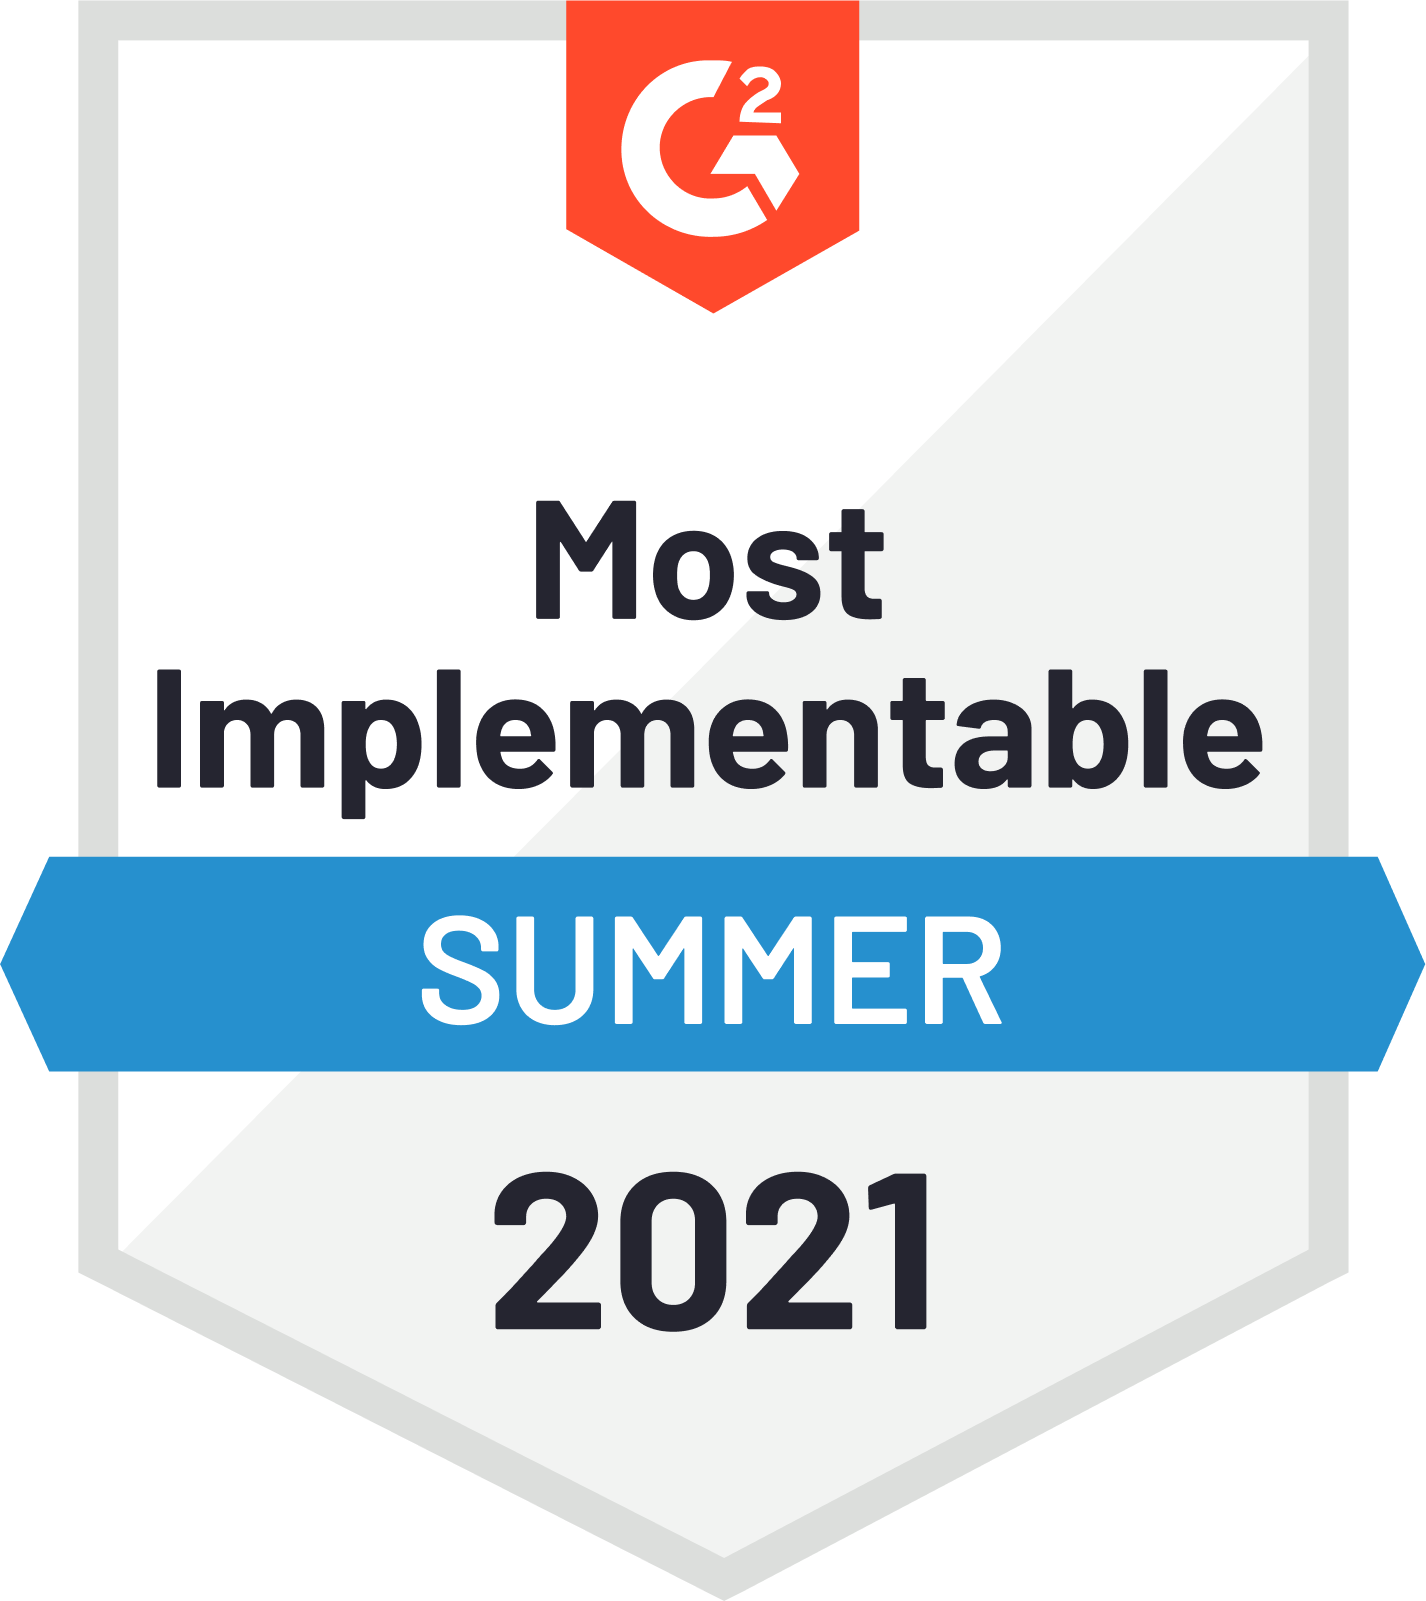 Most Implementable